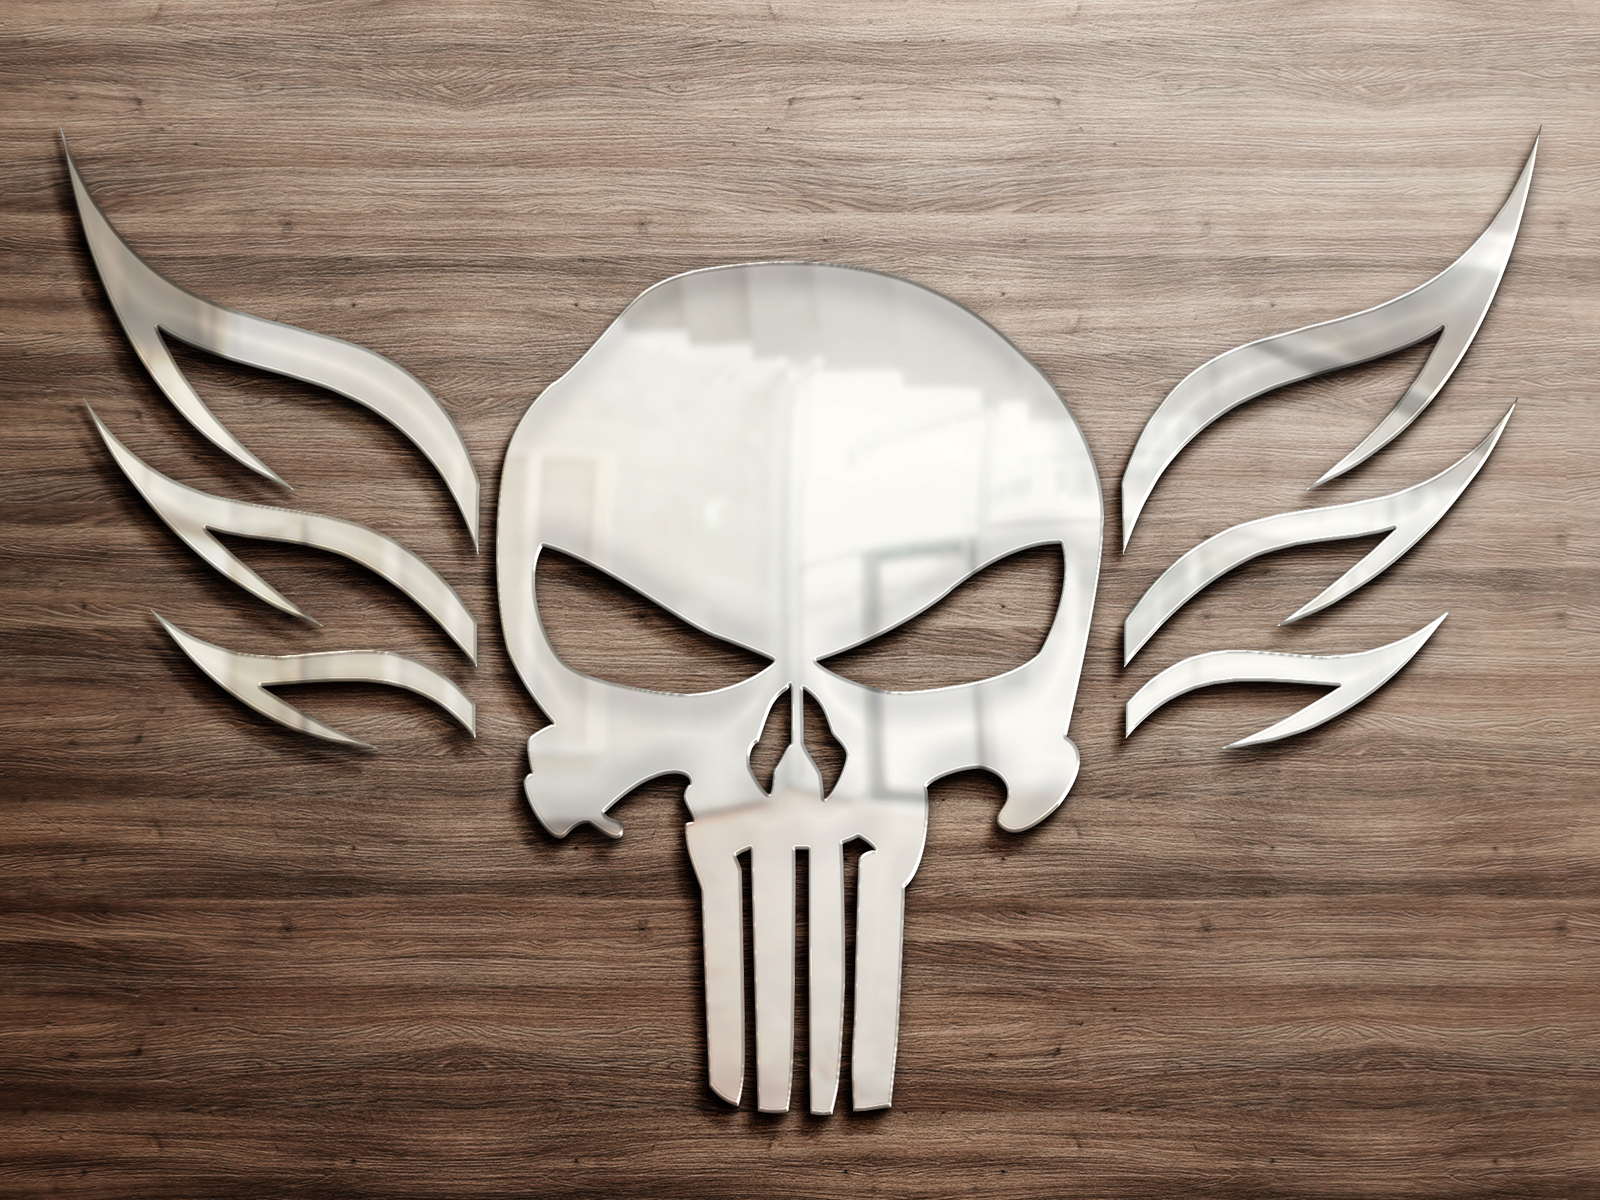 Reflective Metal Skull Wallpapers Reflective Metal Skull